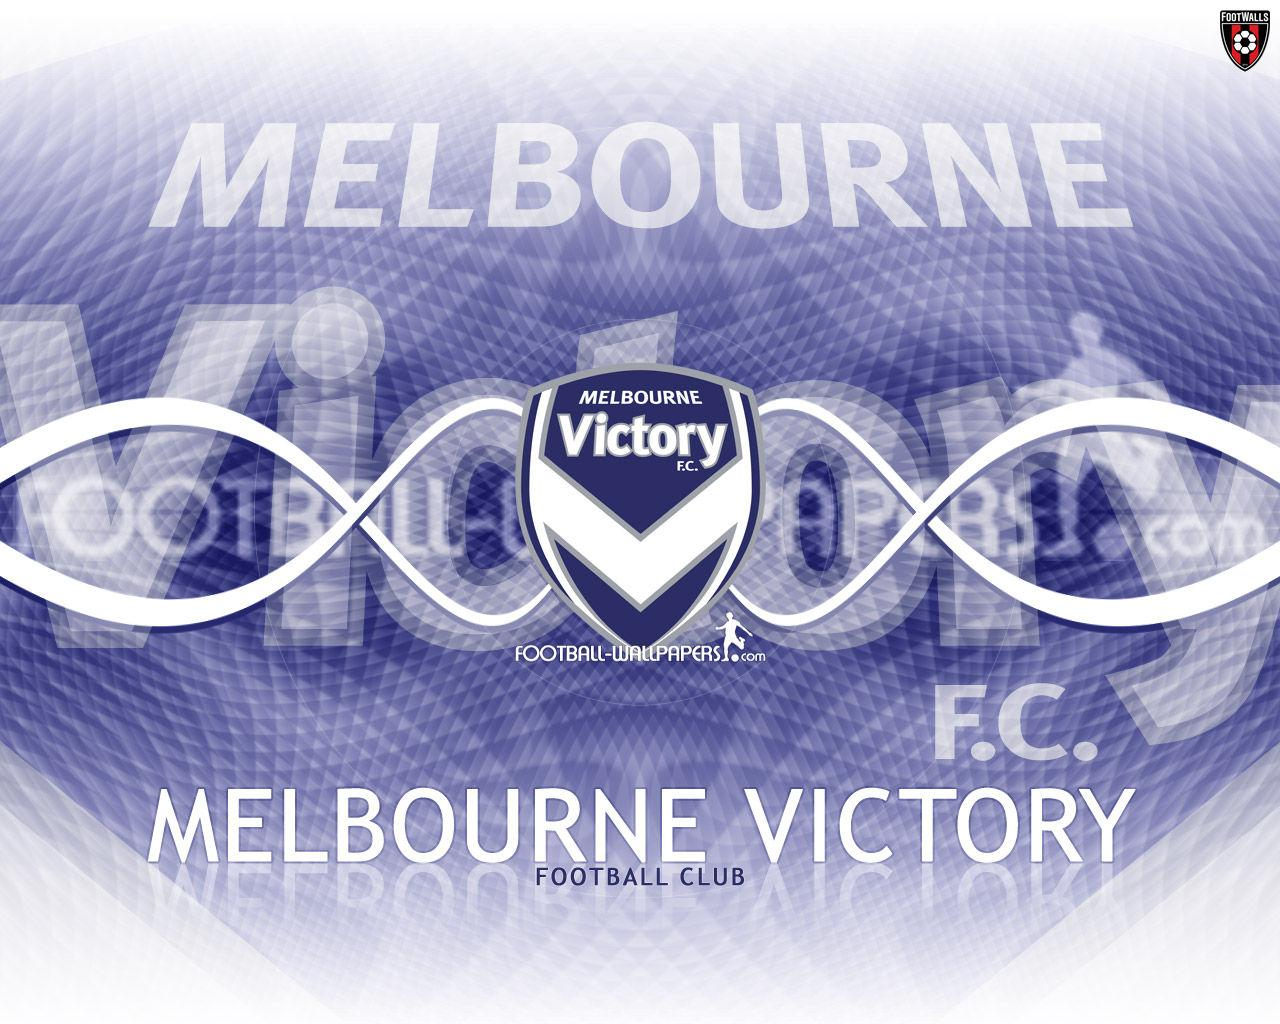 Melbourne Victory Wallpaper #5 - Football Wallpapers